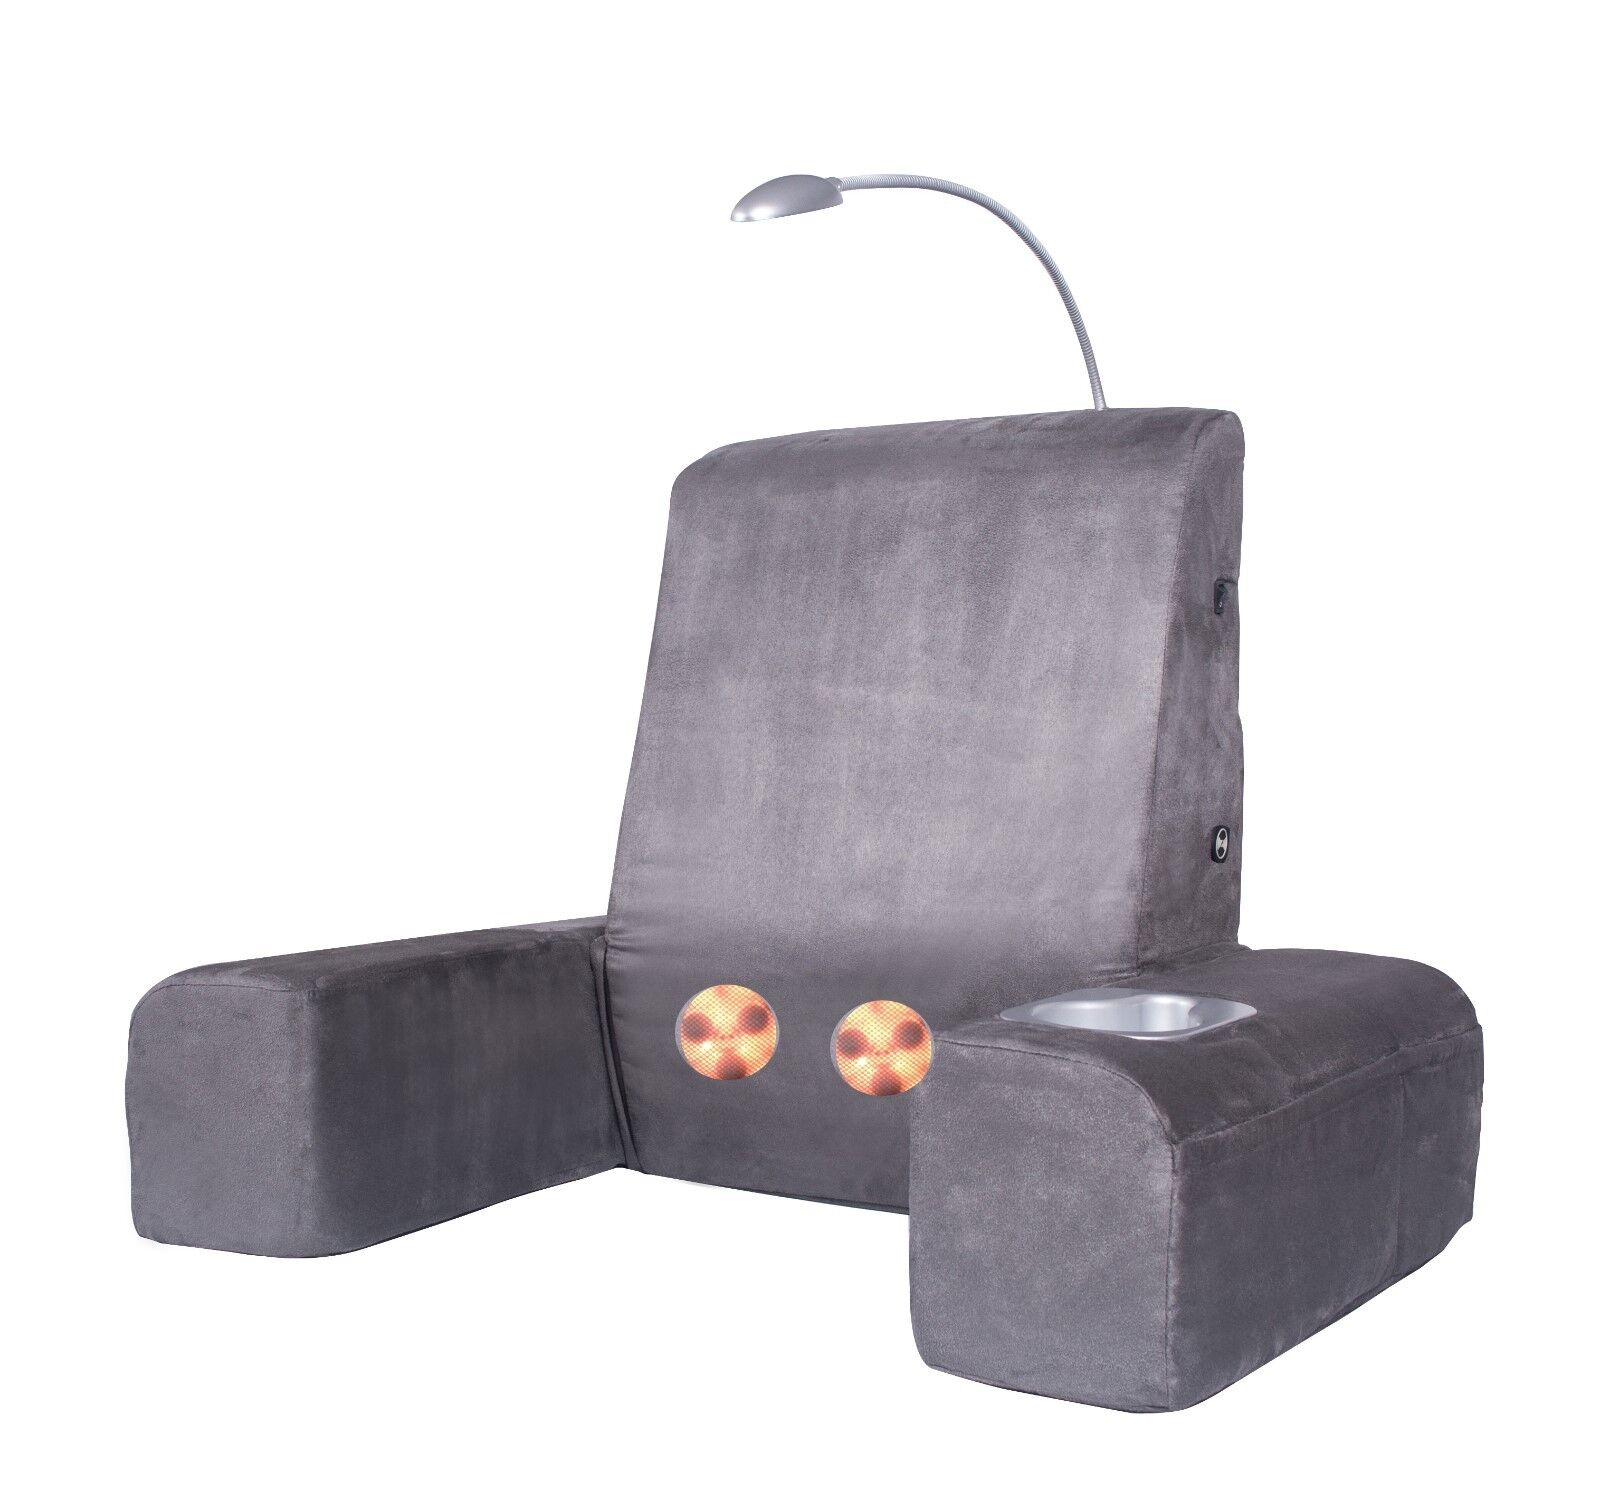 Carepeutic Back Rest Bed Lounger with Heated Comfort Shiatsu